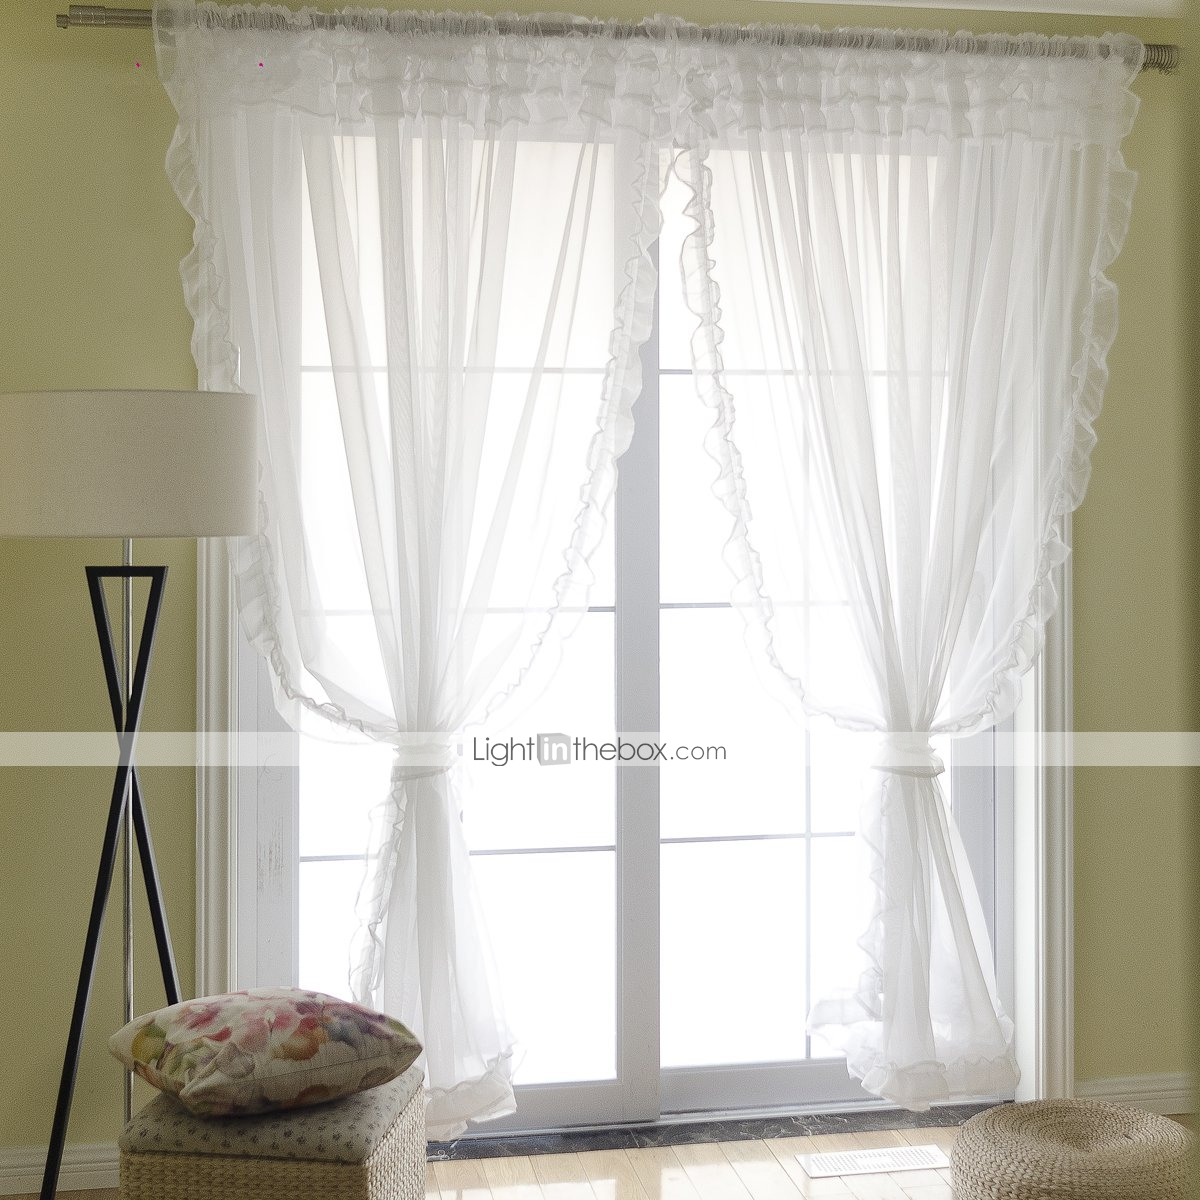 Modern Sheer Curtains Shades Two Panels Living Room Curtains